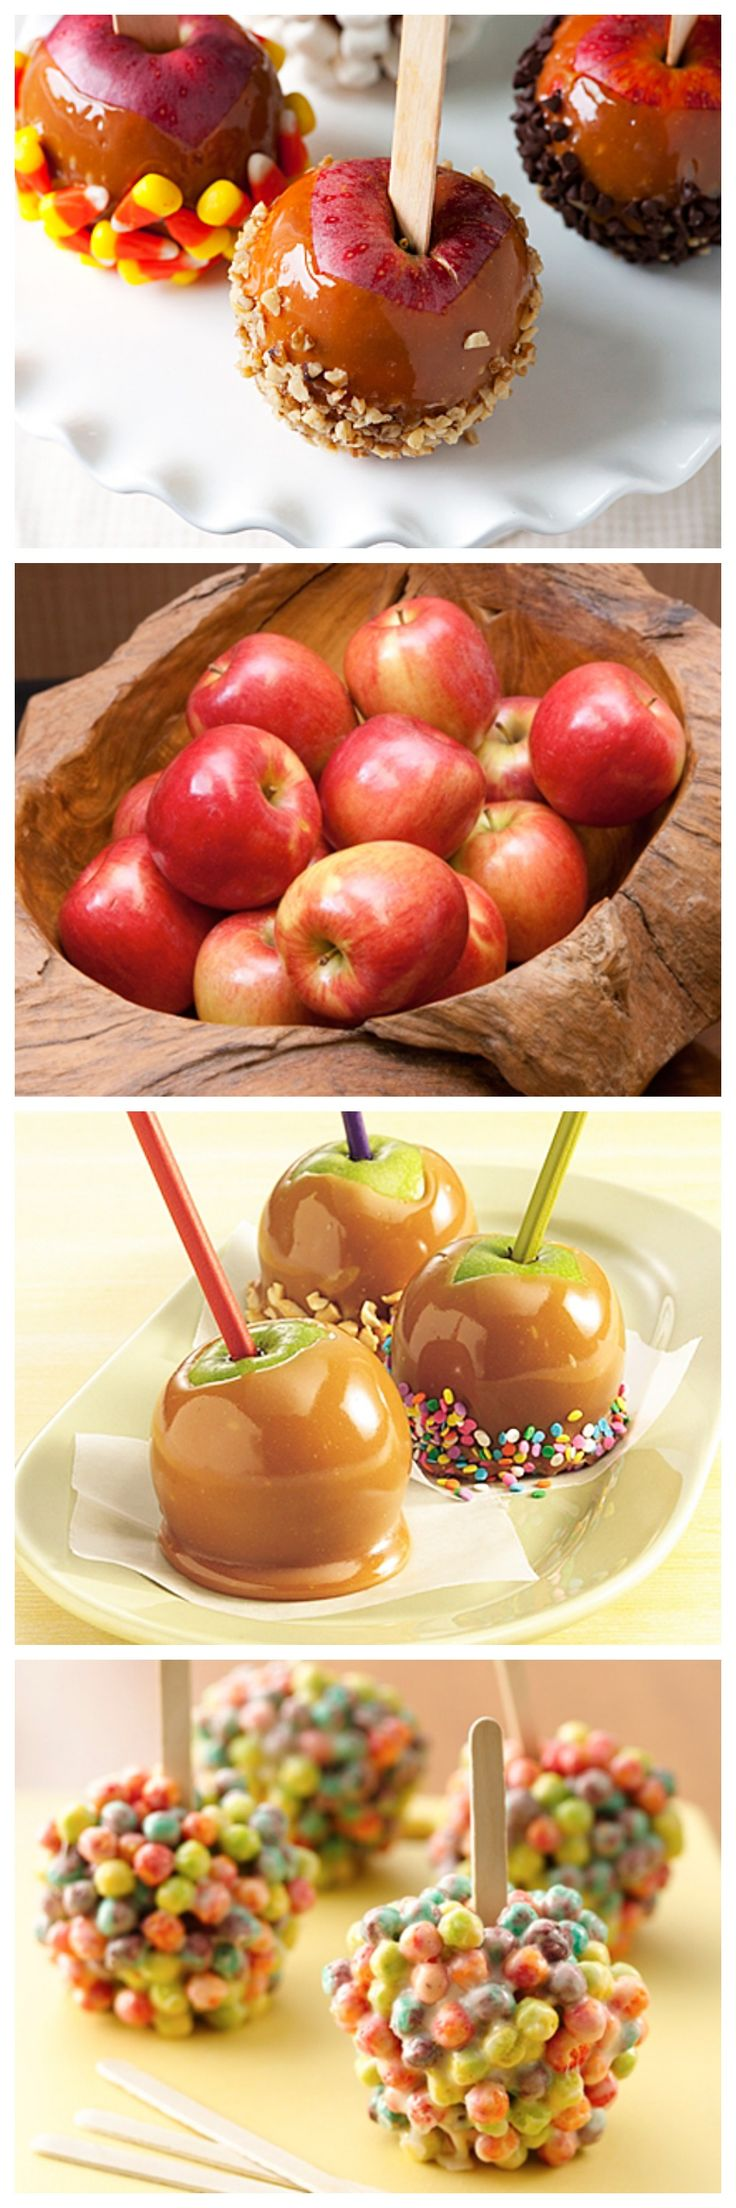 ... Recipes on Pinterest | Pumpkin Pies, Apple Pies and Caramel Apples